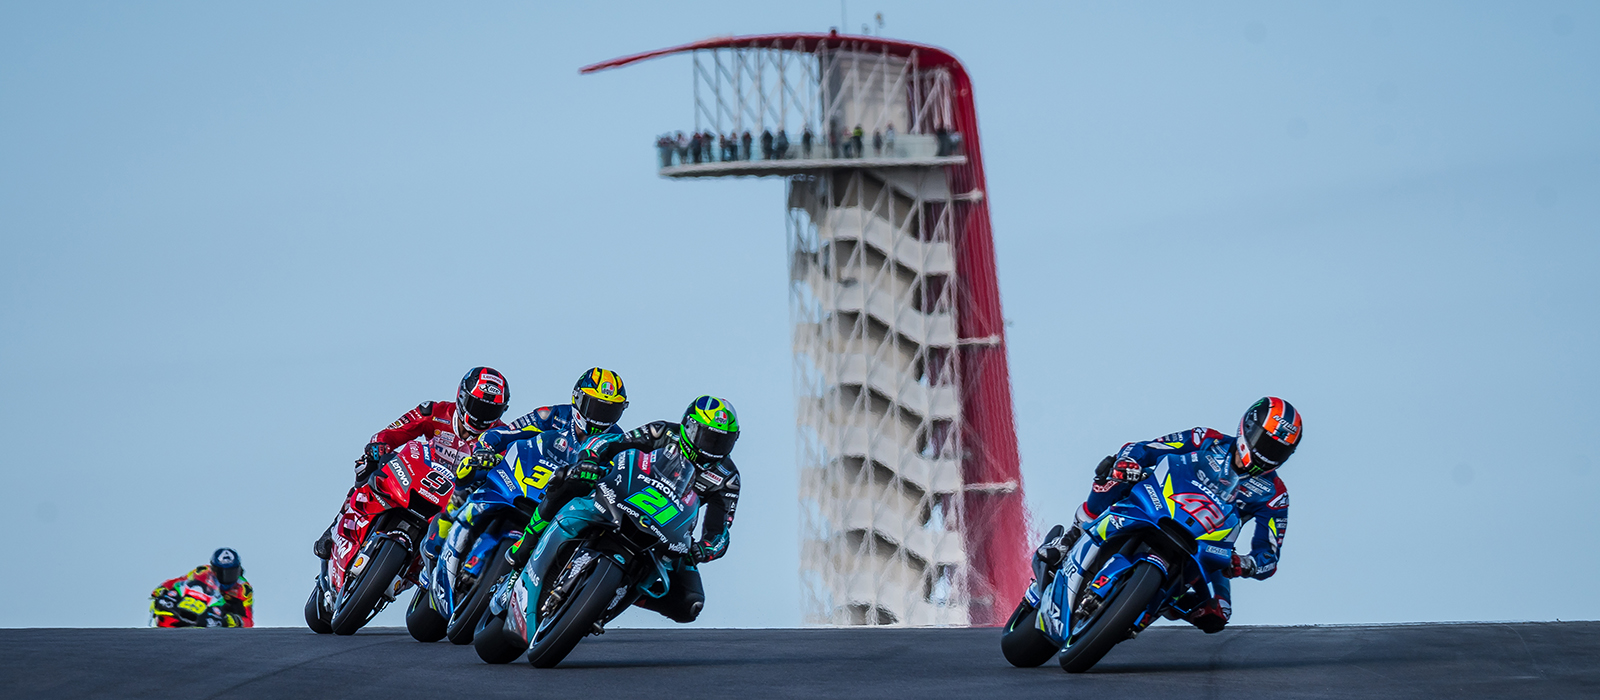 Calendario Moto Gp 2020.2020 Motogp Red Bull Grand Prix Of The Circuit Of The Americas